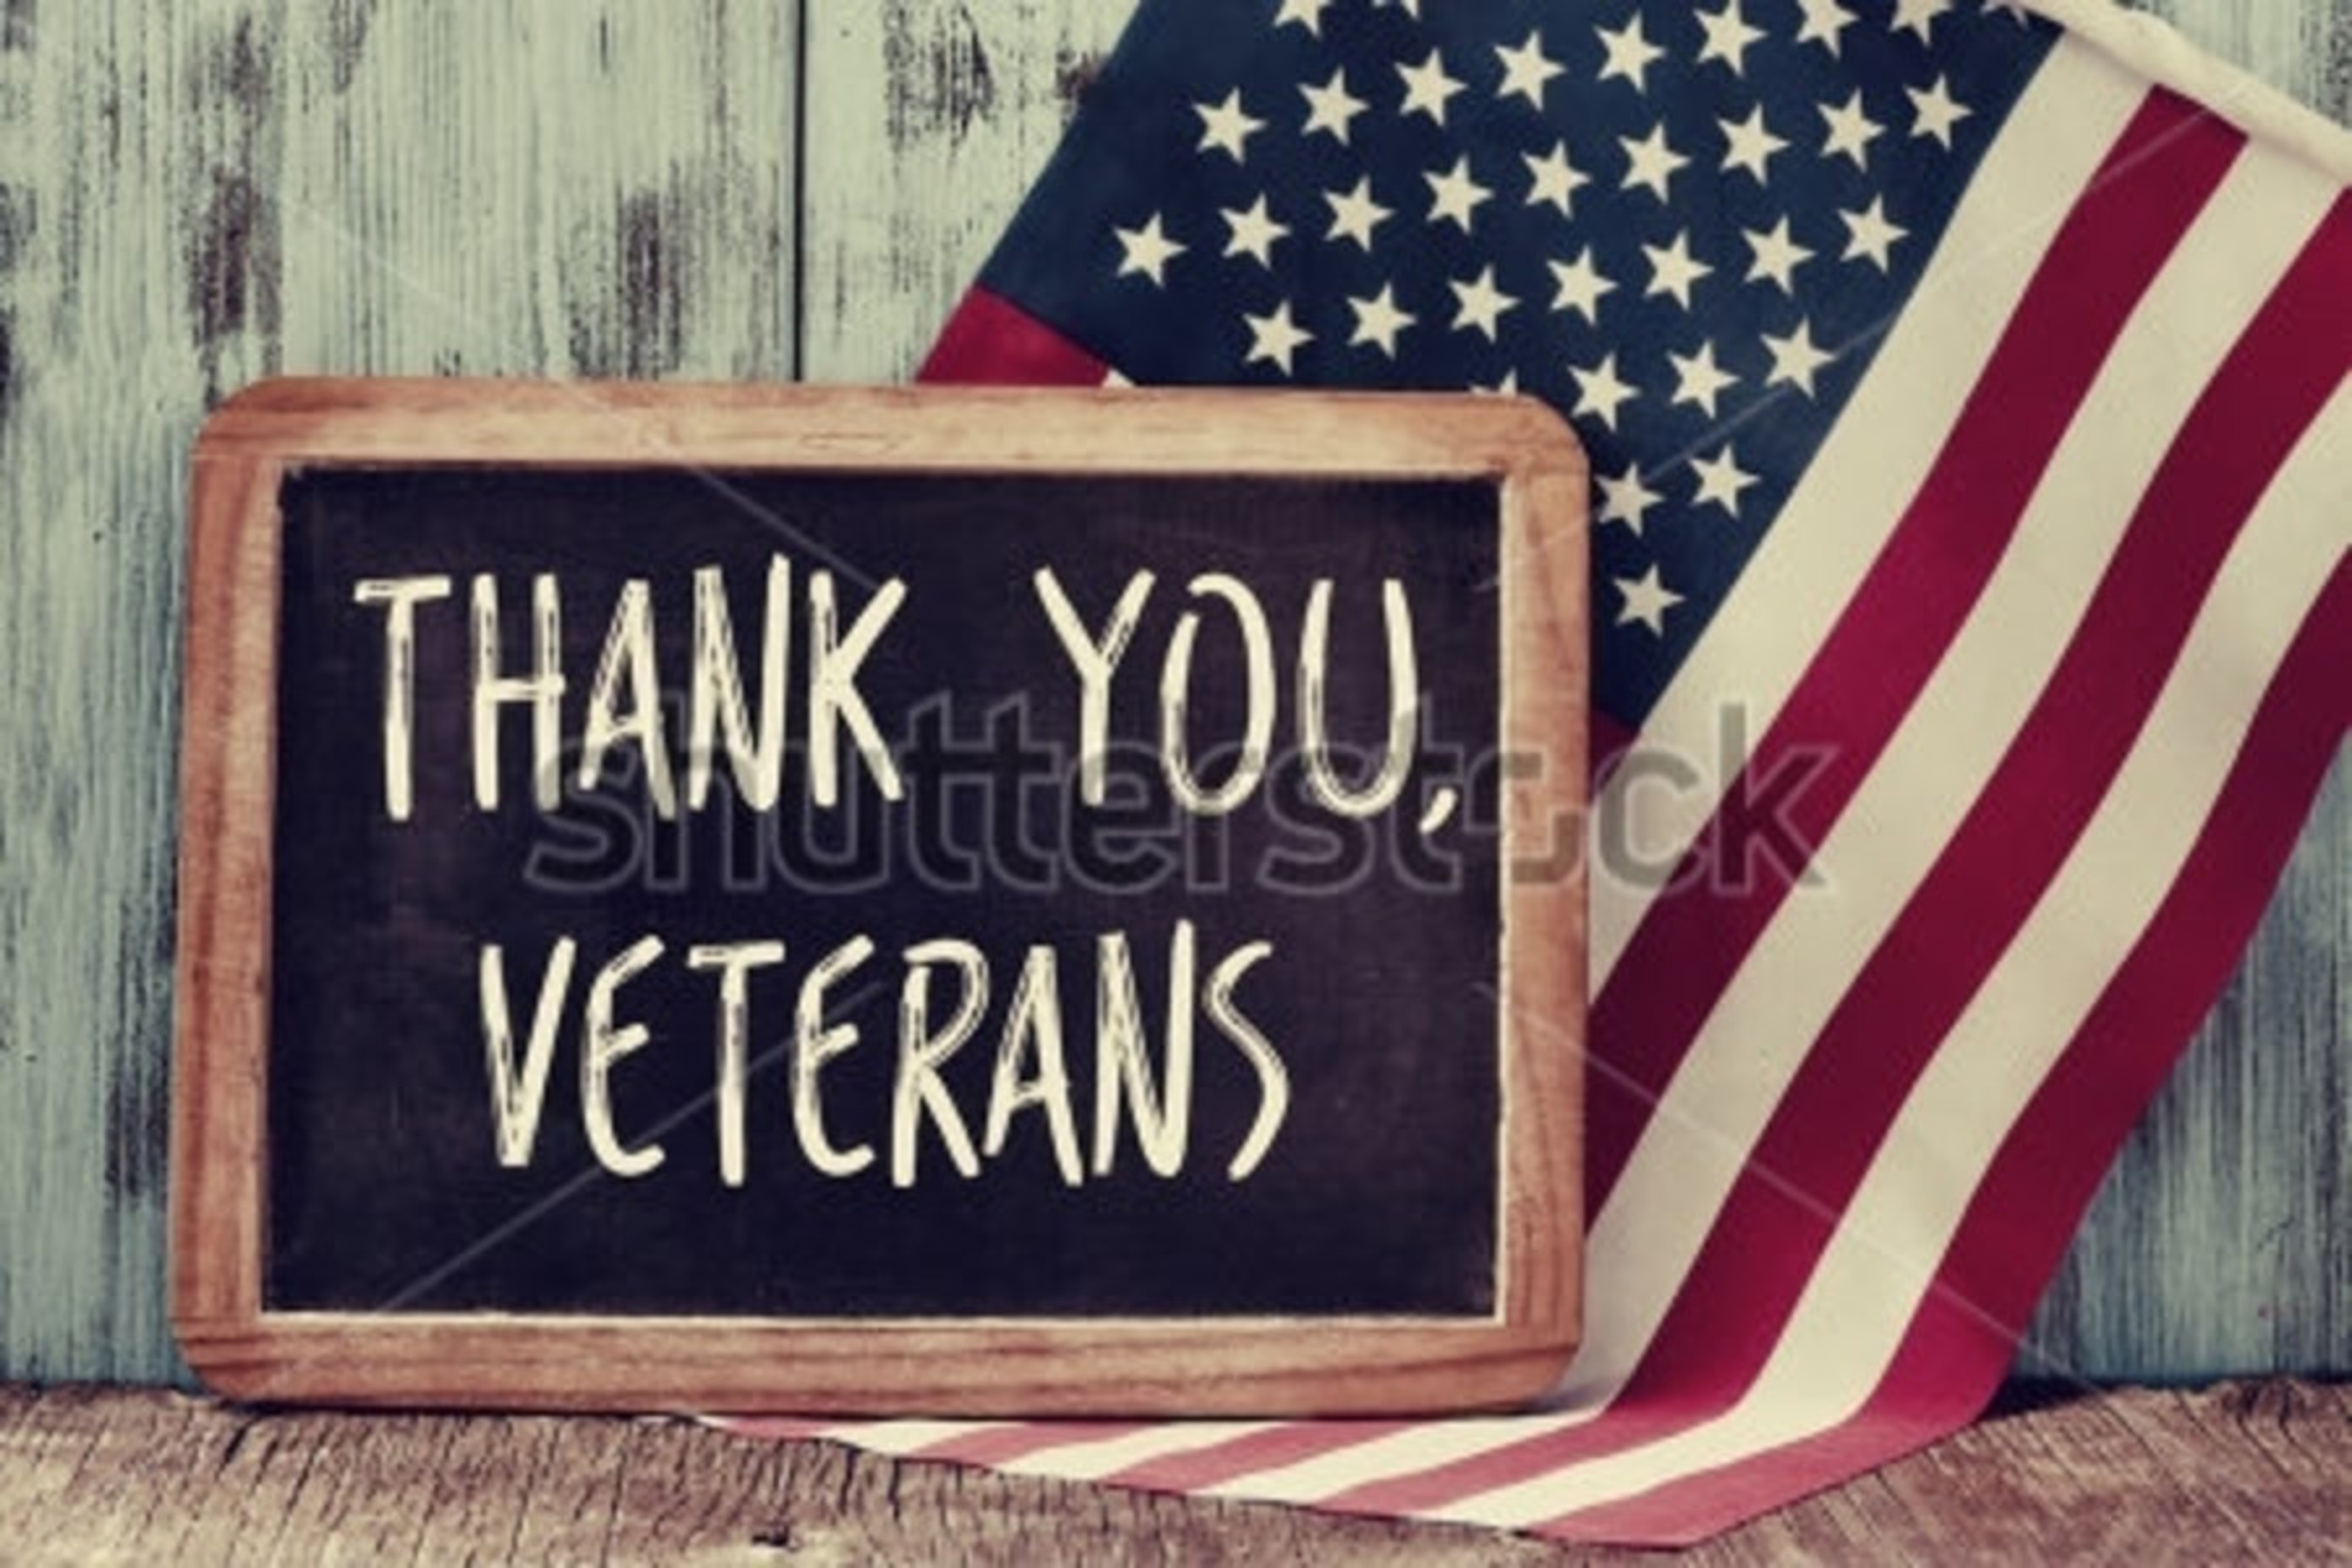 Primus Technologies Increases Donations for Veterans of US Armed Forces, Local Health Care and Scholarships